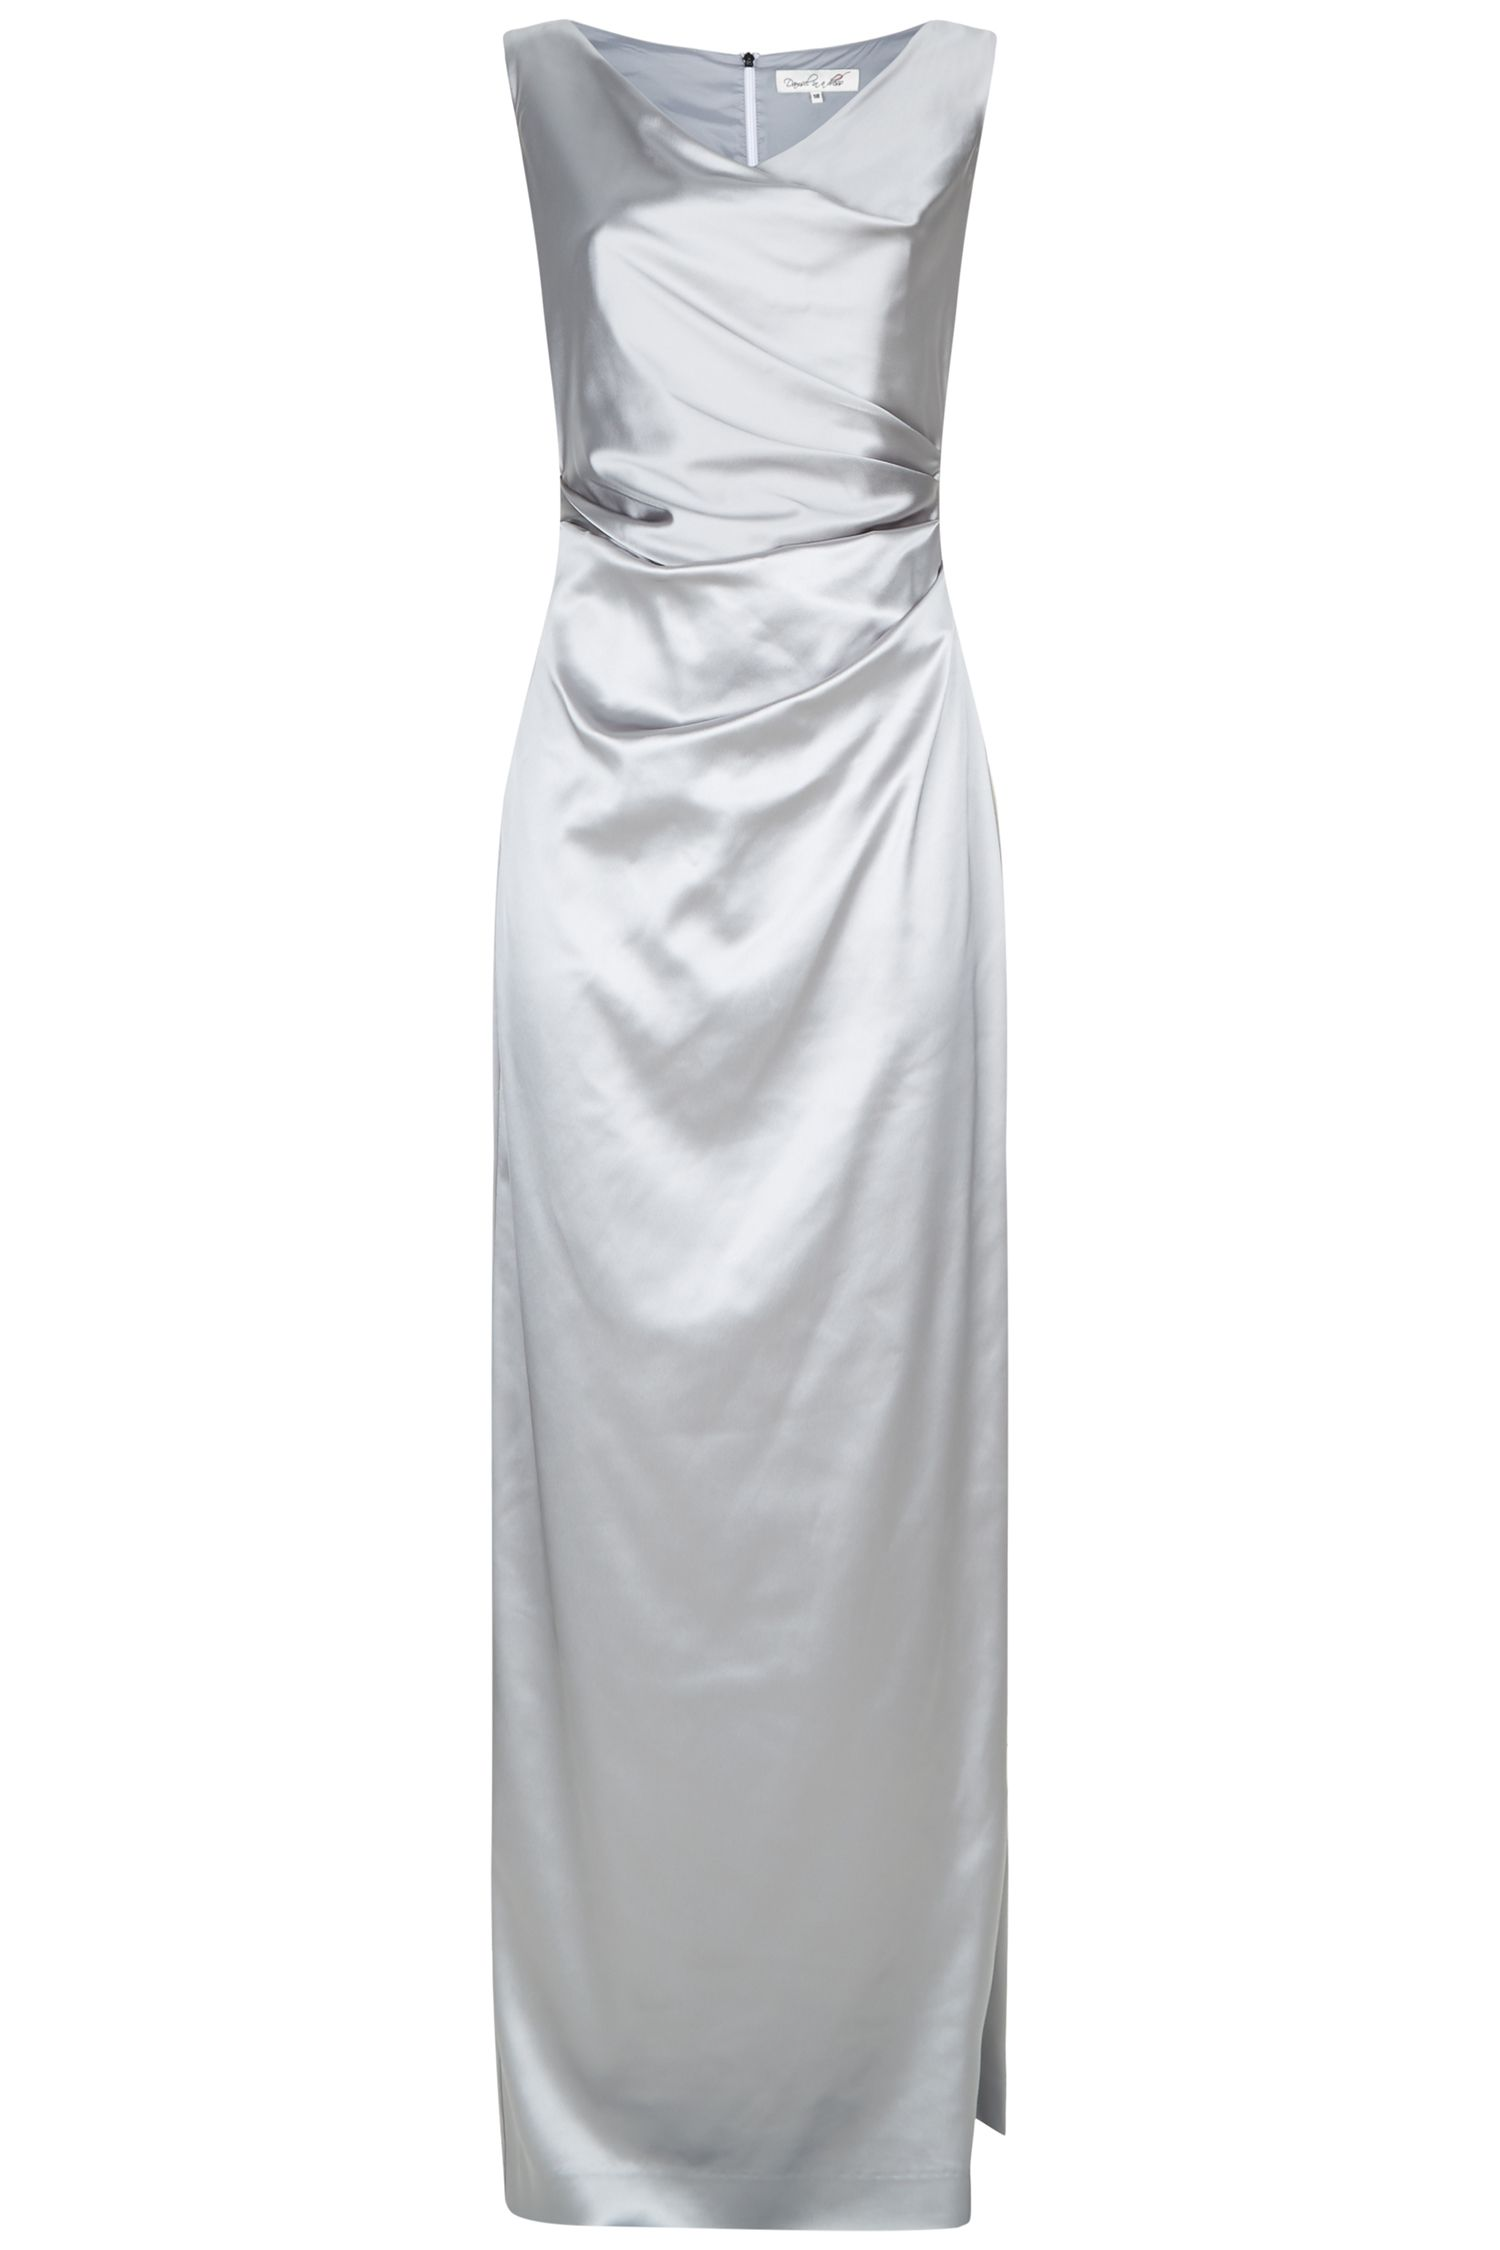 Damsel in a Dress Bellini Dress, Silver